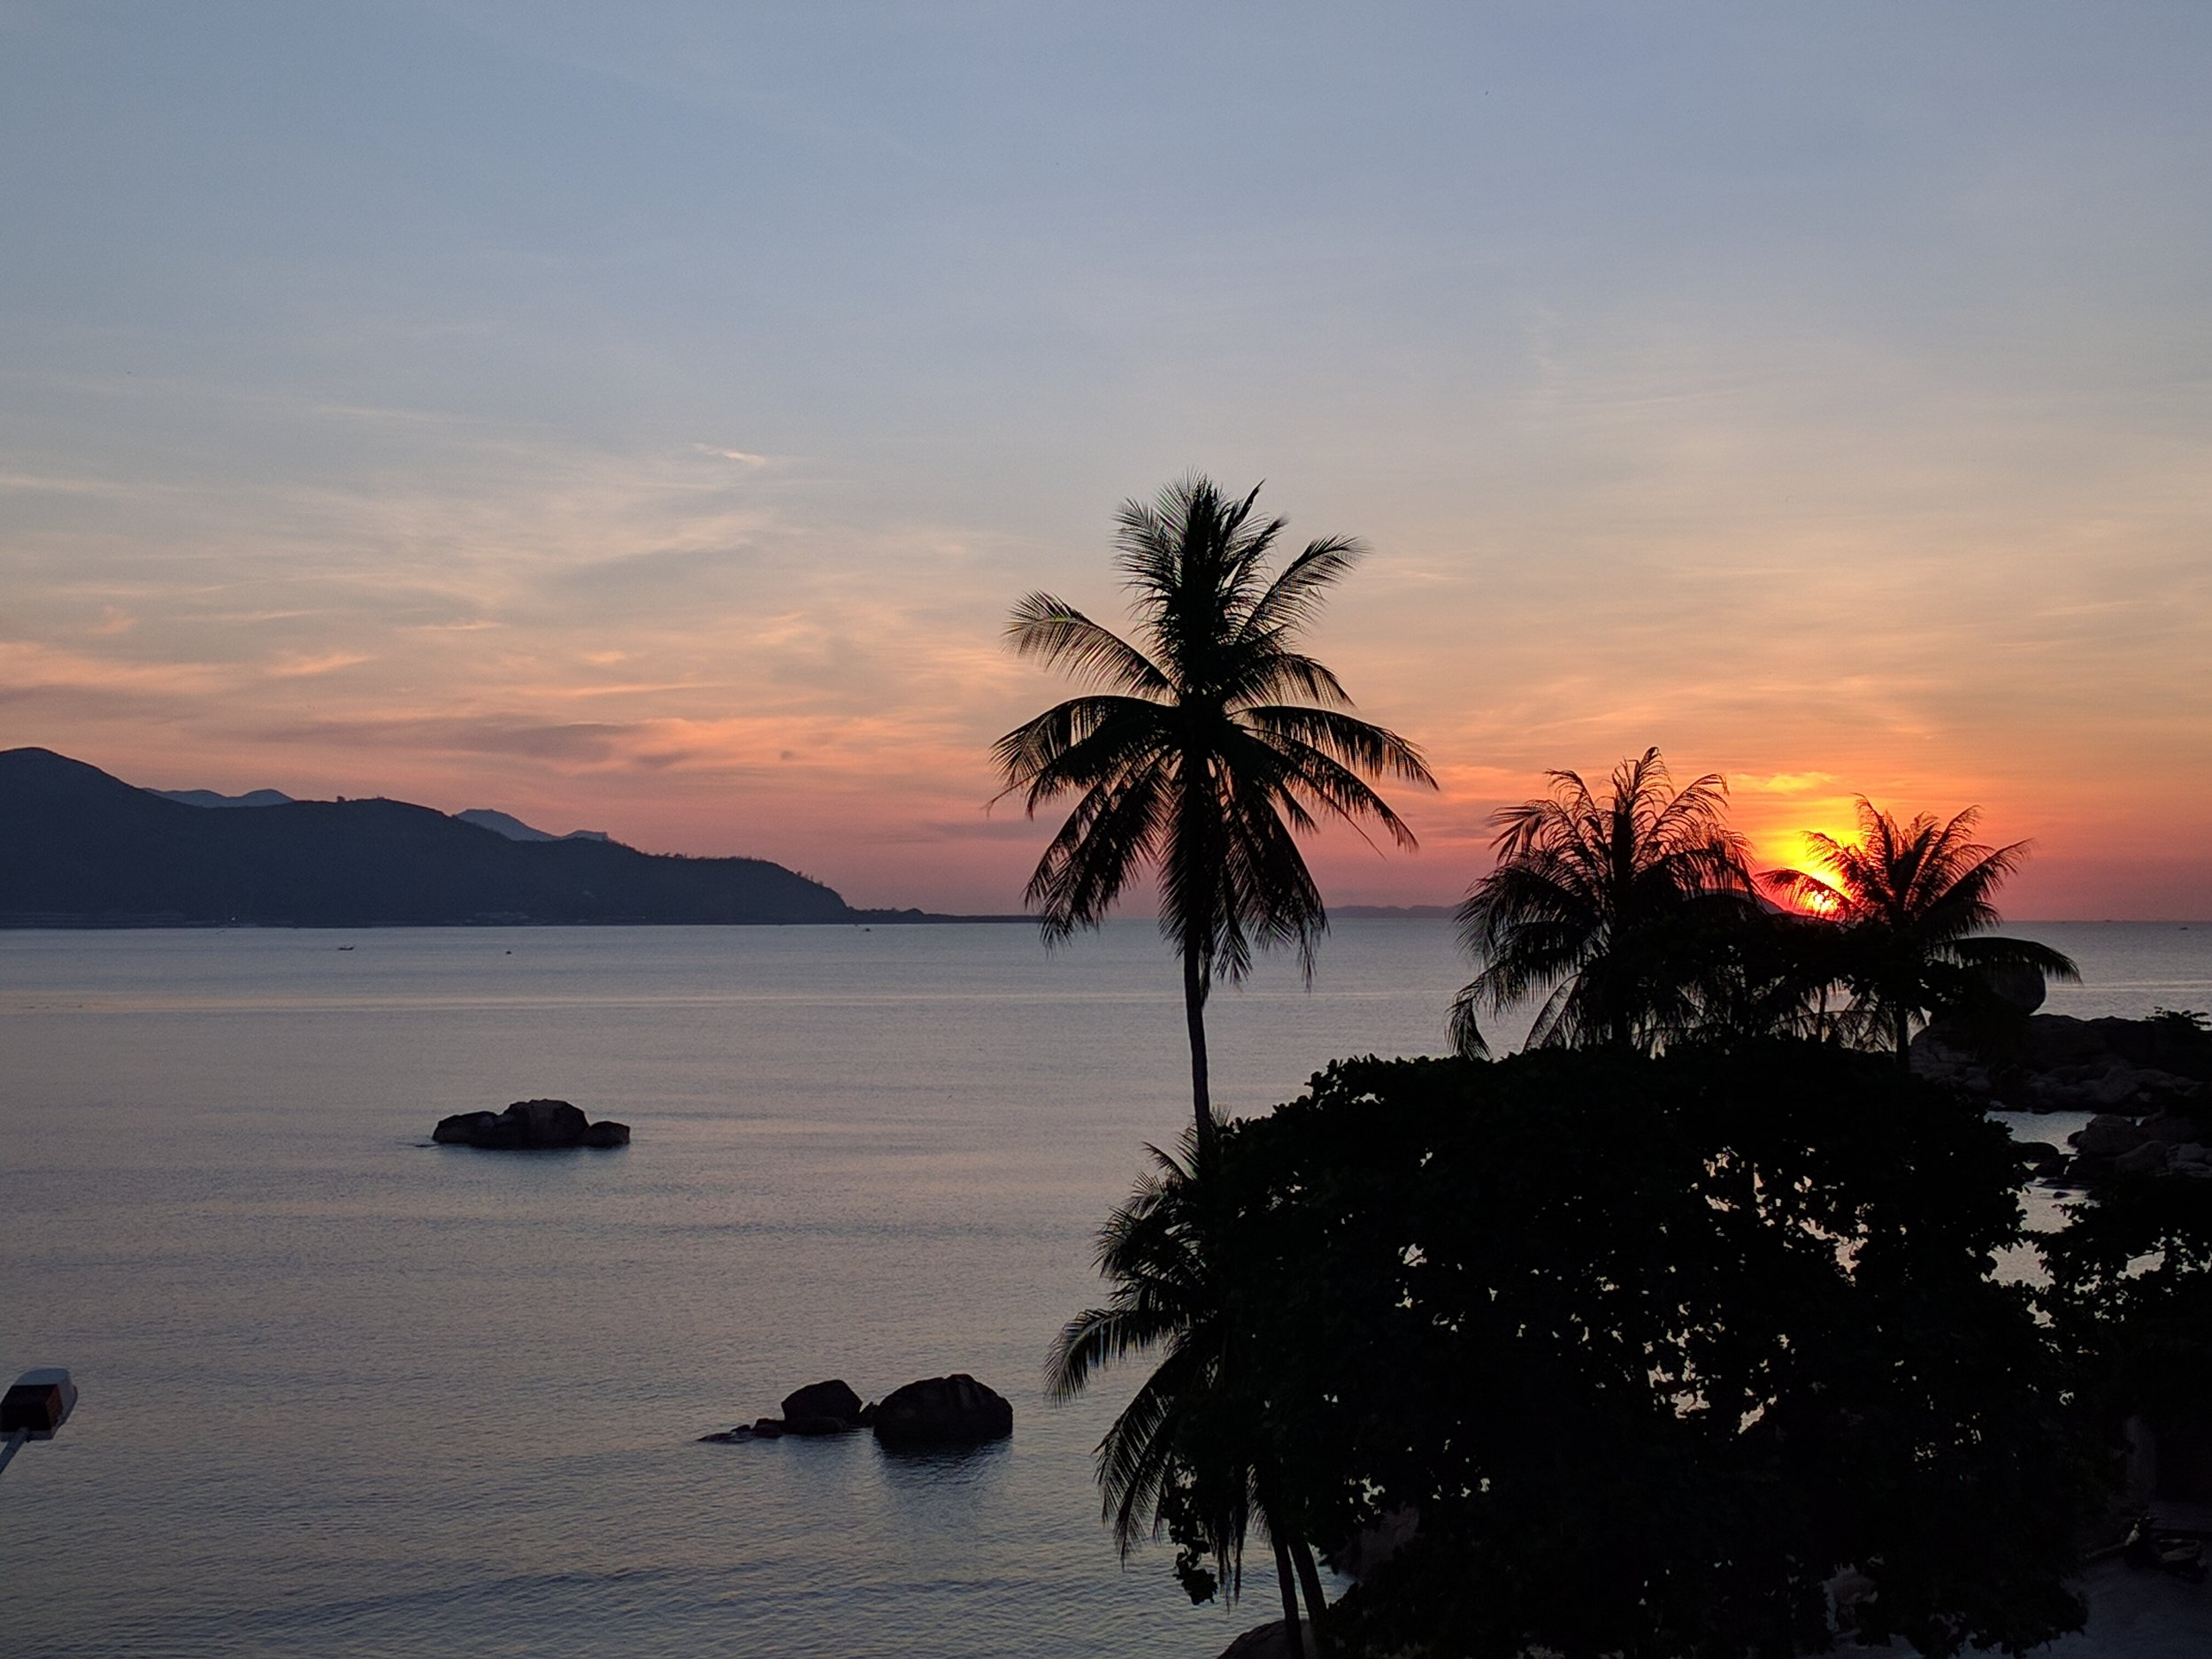 View at sunrise from the balcony of our first hotel in Nha Trang